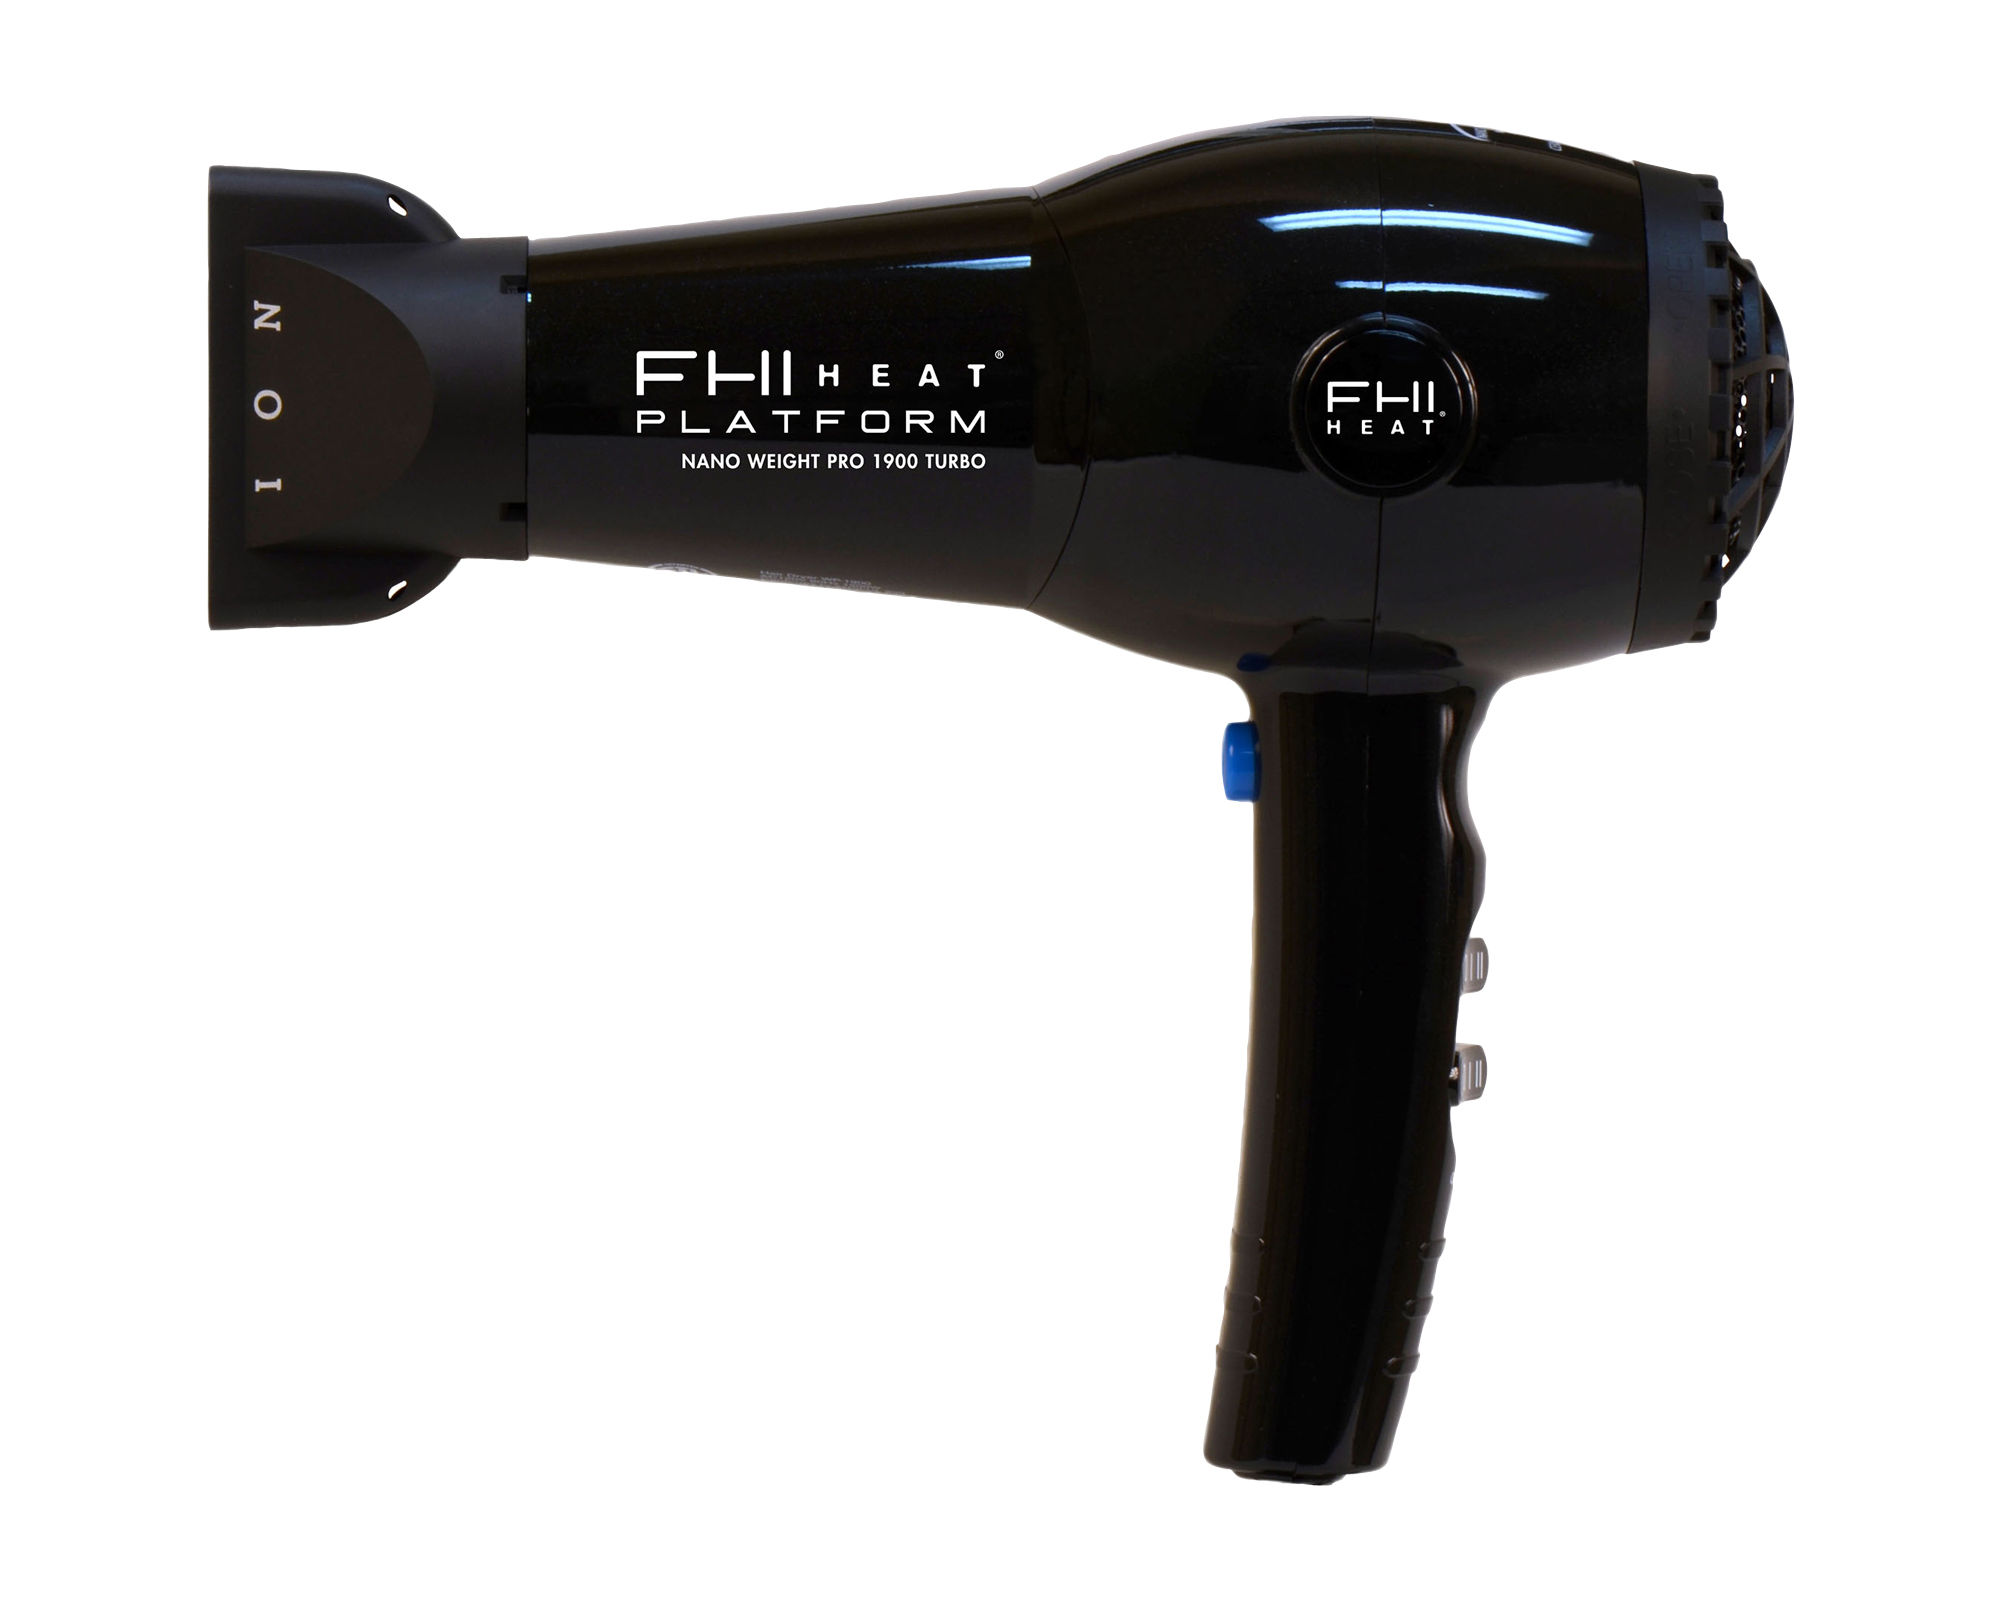 FHI HEAT Platform Pro 1900 Turbo Tourmaline Ceramic Hair Dryer